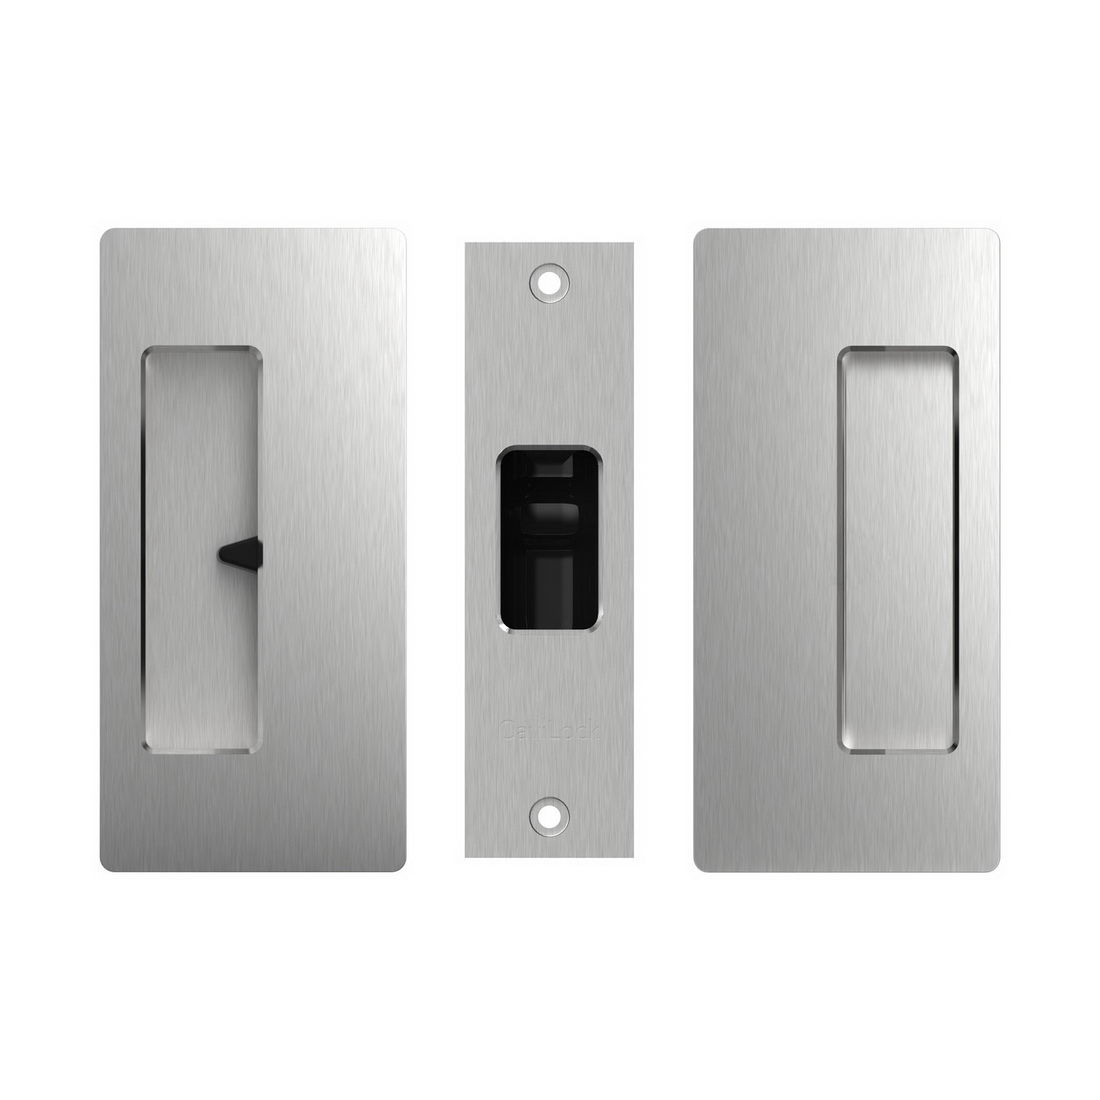 Magnetic Privacy Handle 33-40mm SC CL205-D